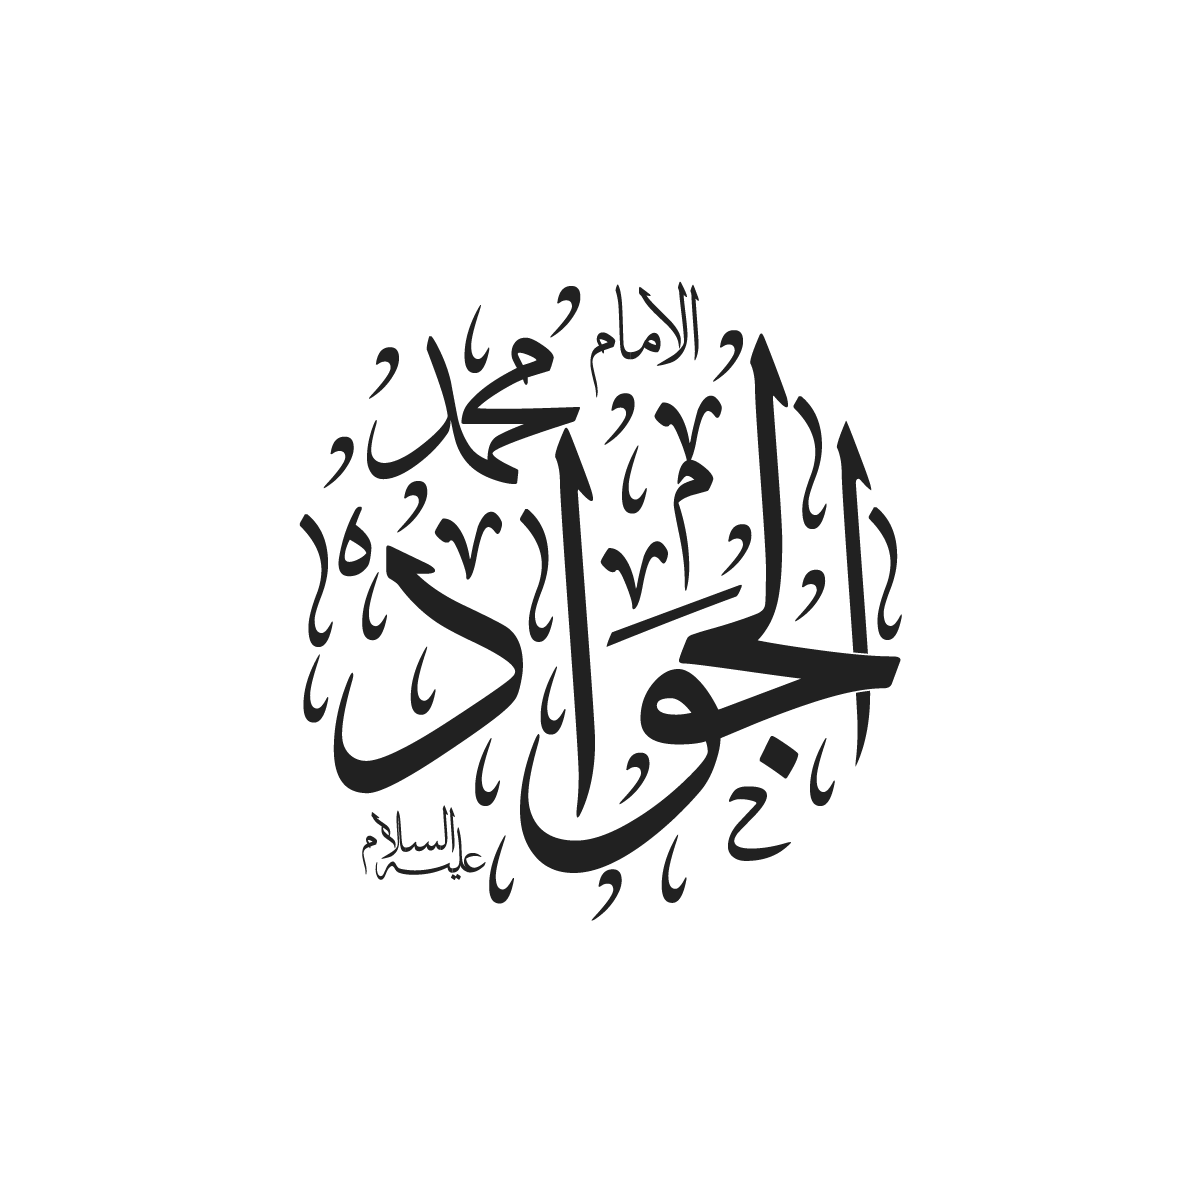 flatdesign logo color png imams black white